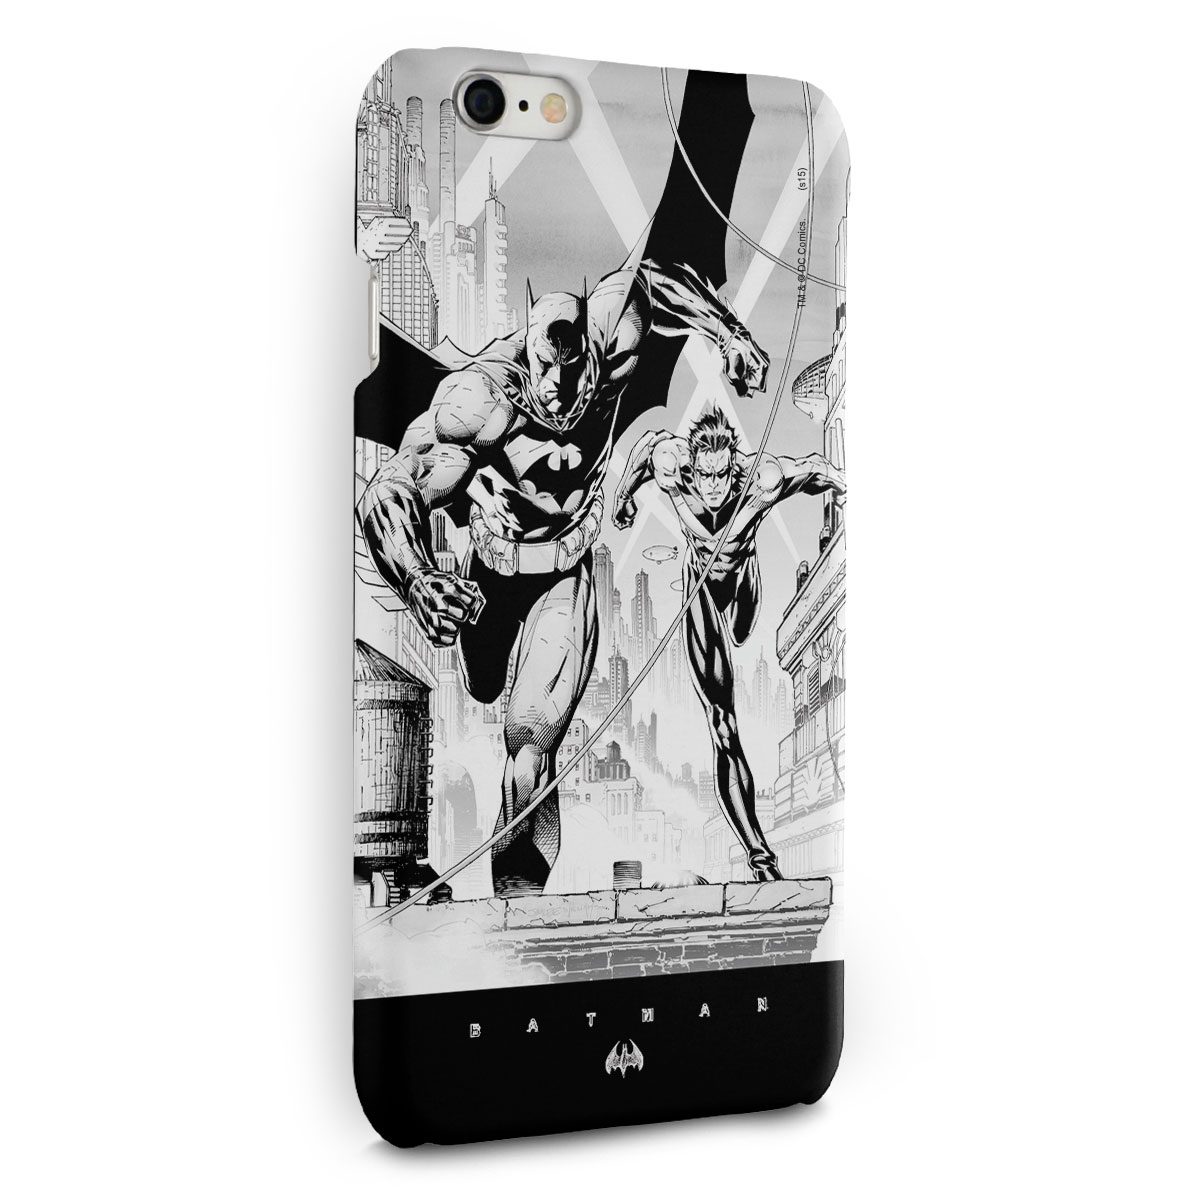 Capa para iPhone 6/6S Plus Tracing Batman e Robin